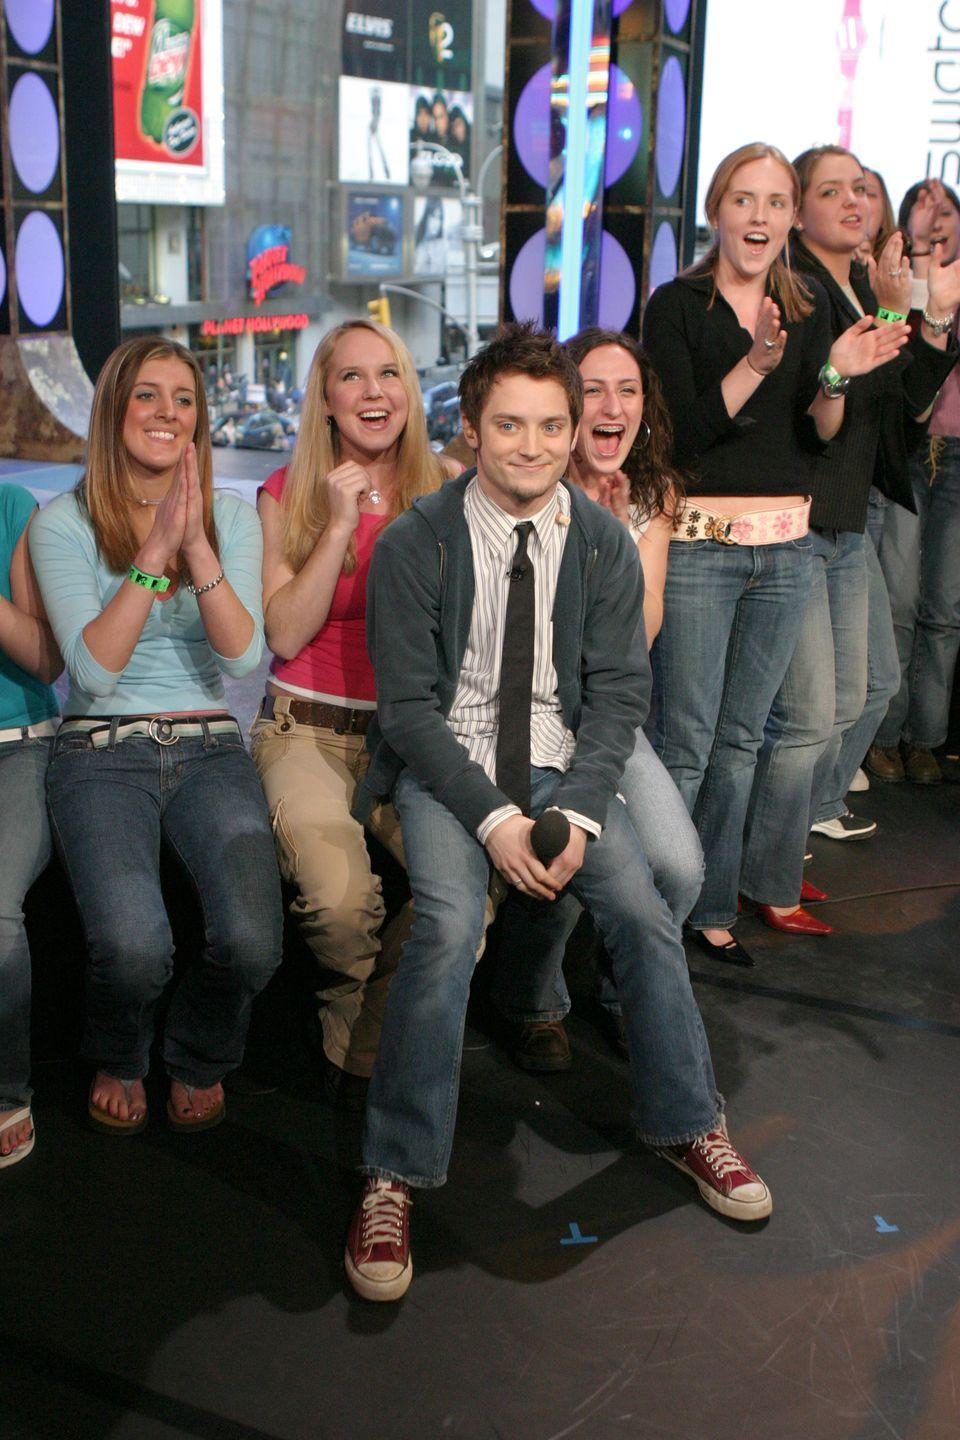 <p>Just Elijah Wood promoting <em>The</em> <em>Lord of the Rings</em> while wearing high water bootcut jeans and sitting on these girls' laps, don't even worry about it. </p>